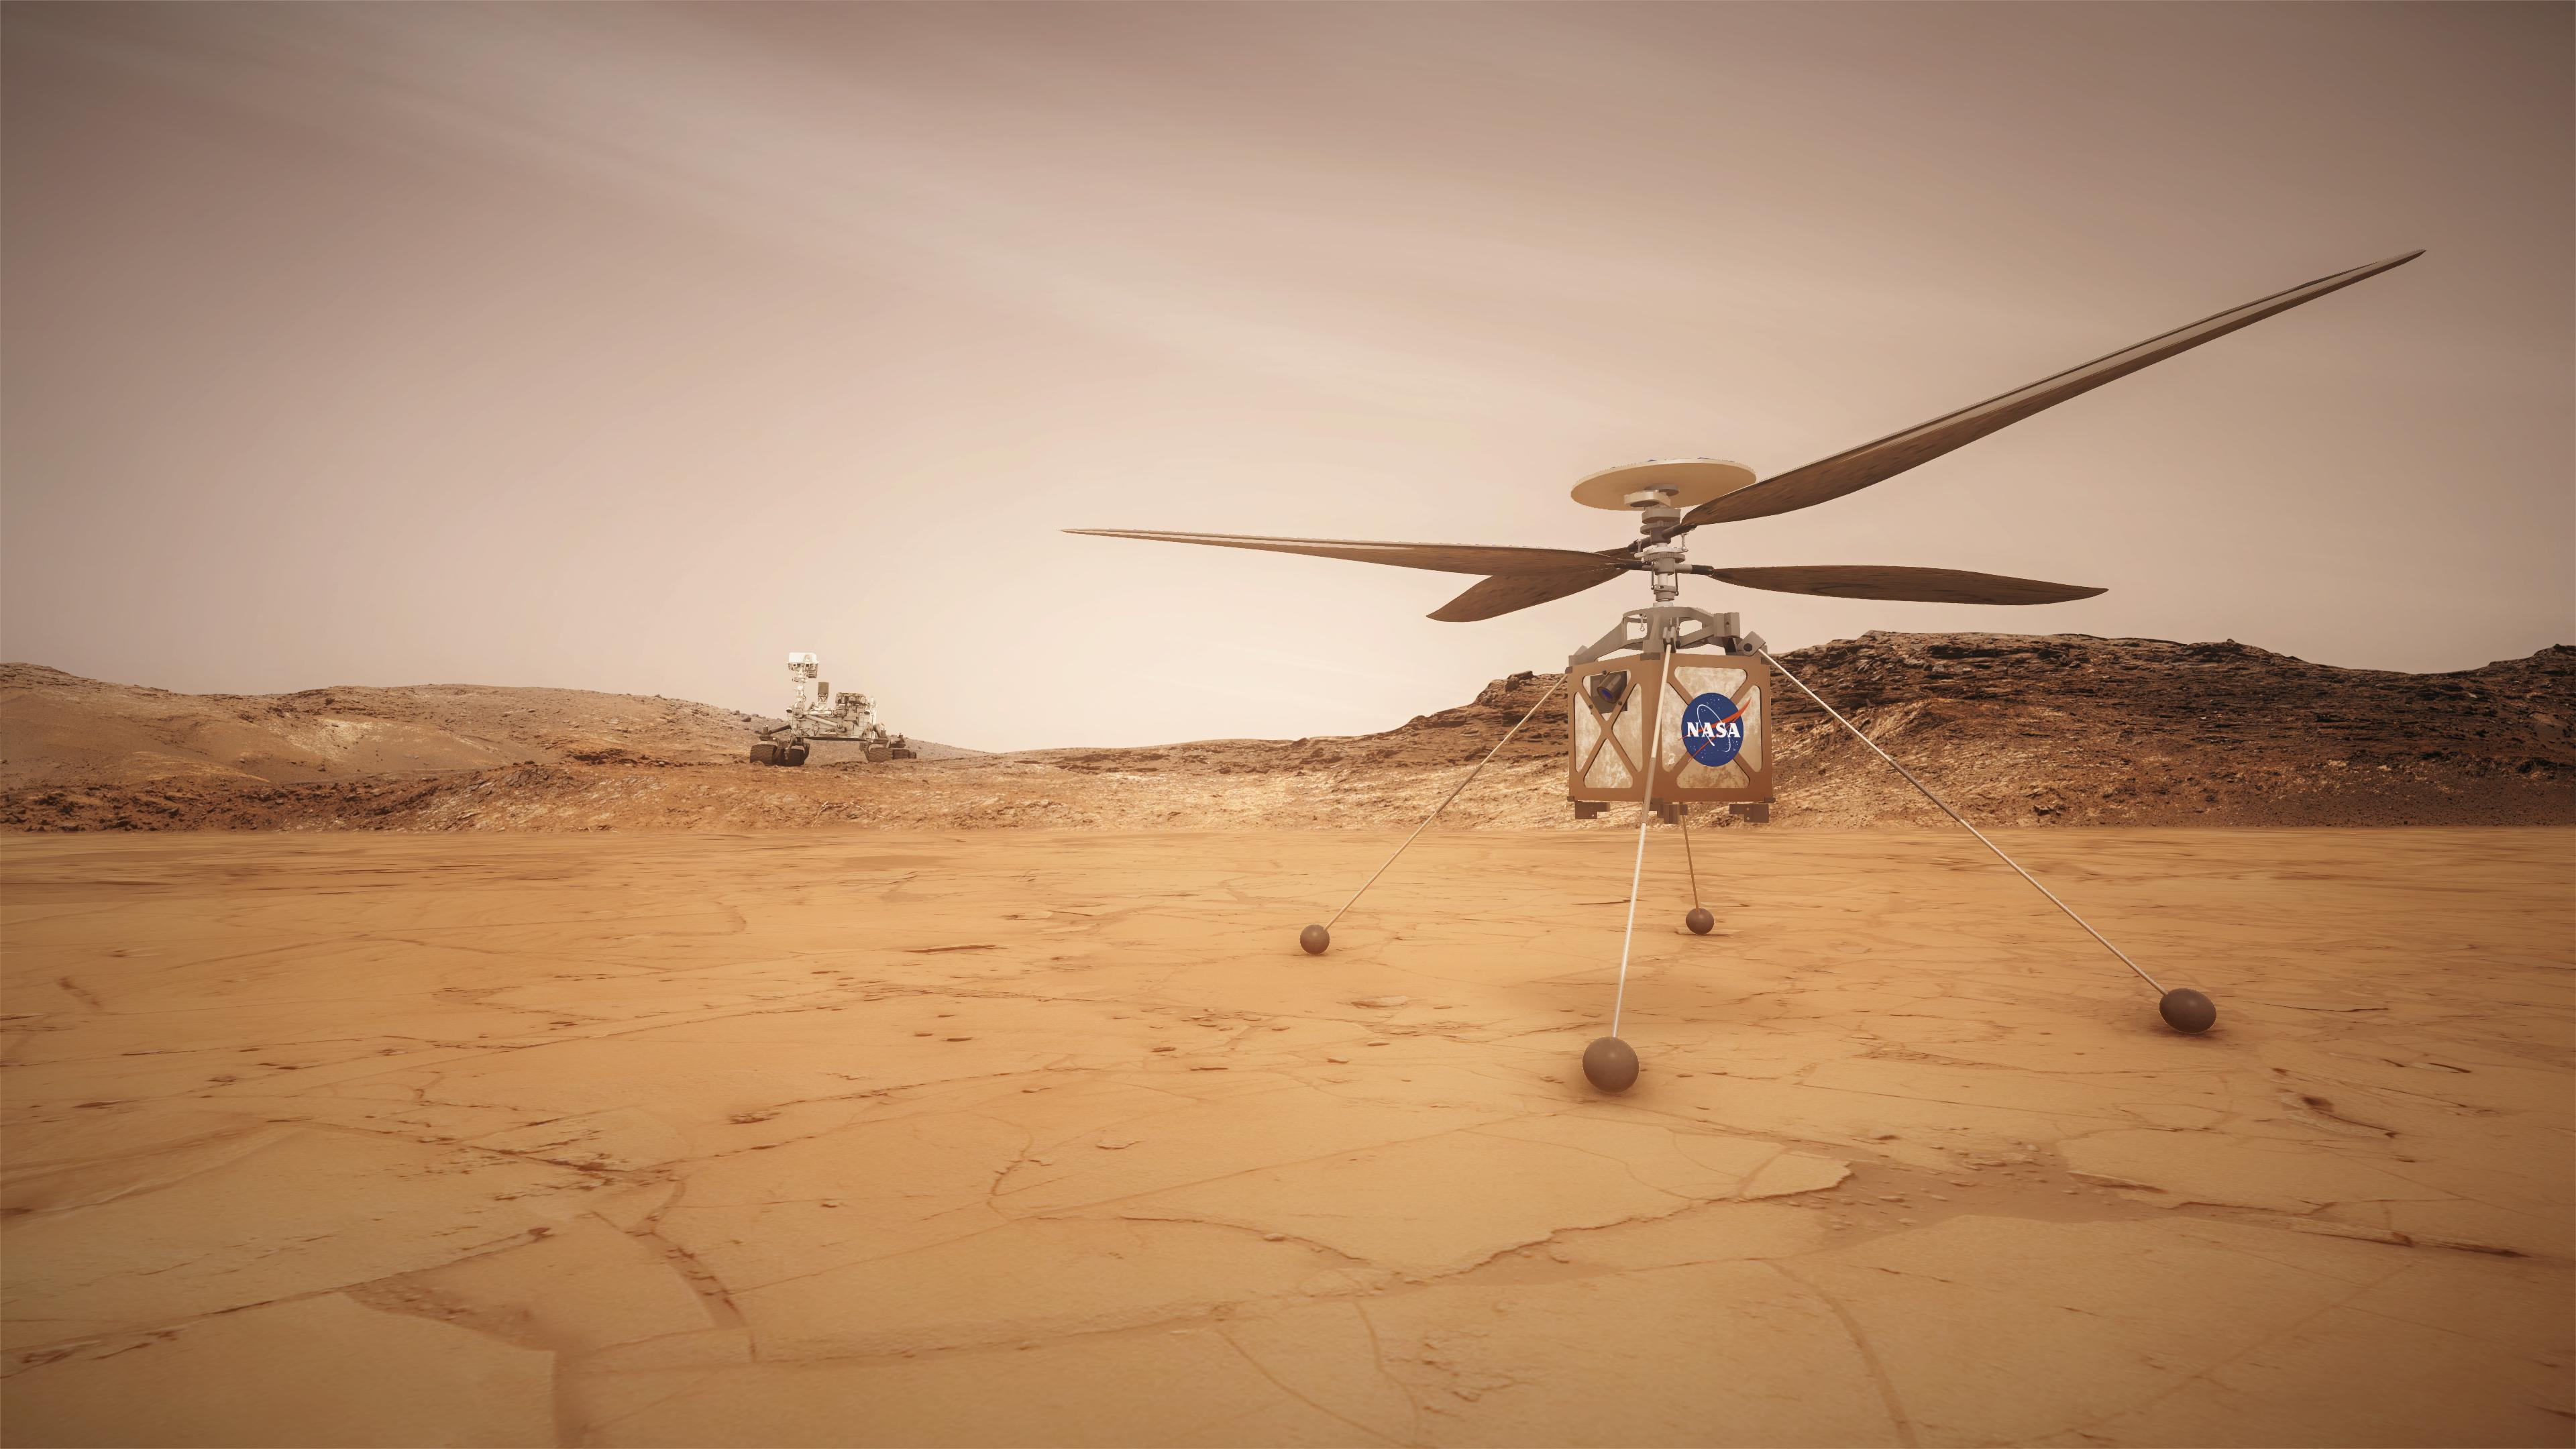 JPL Mars Helicopter Scout - Wikipedia